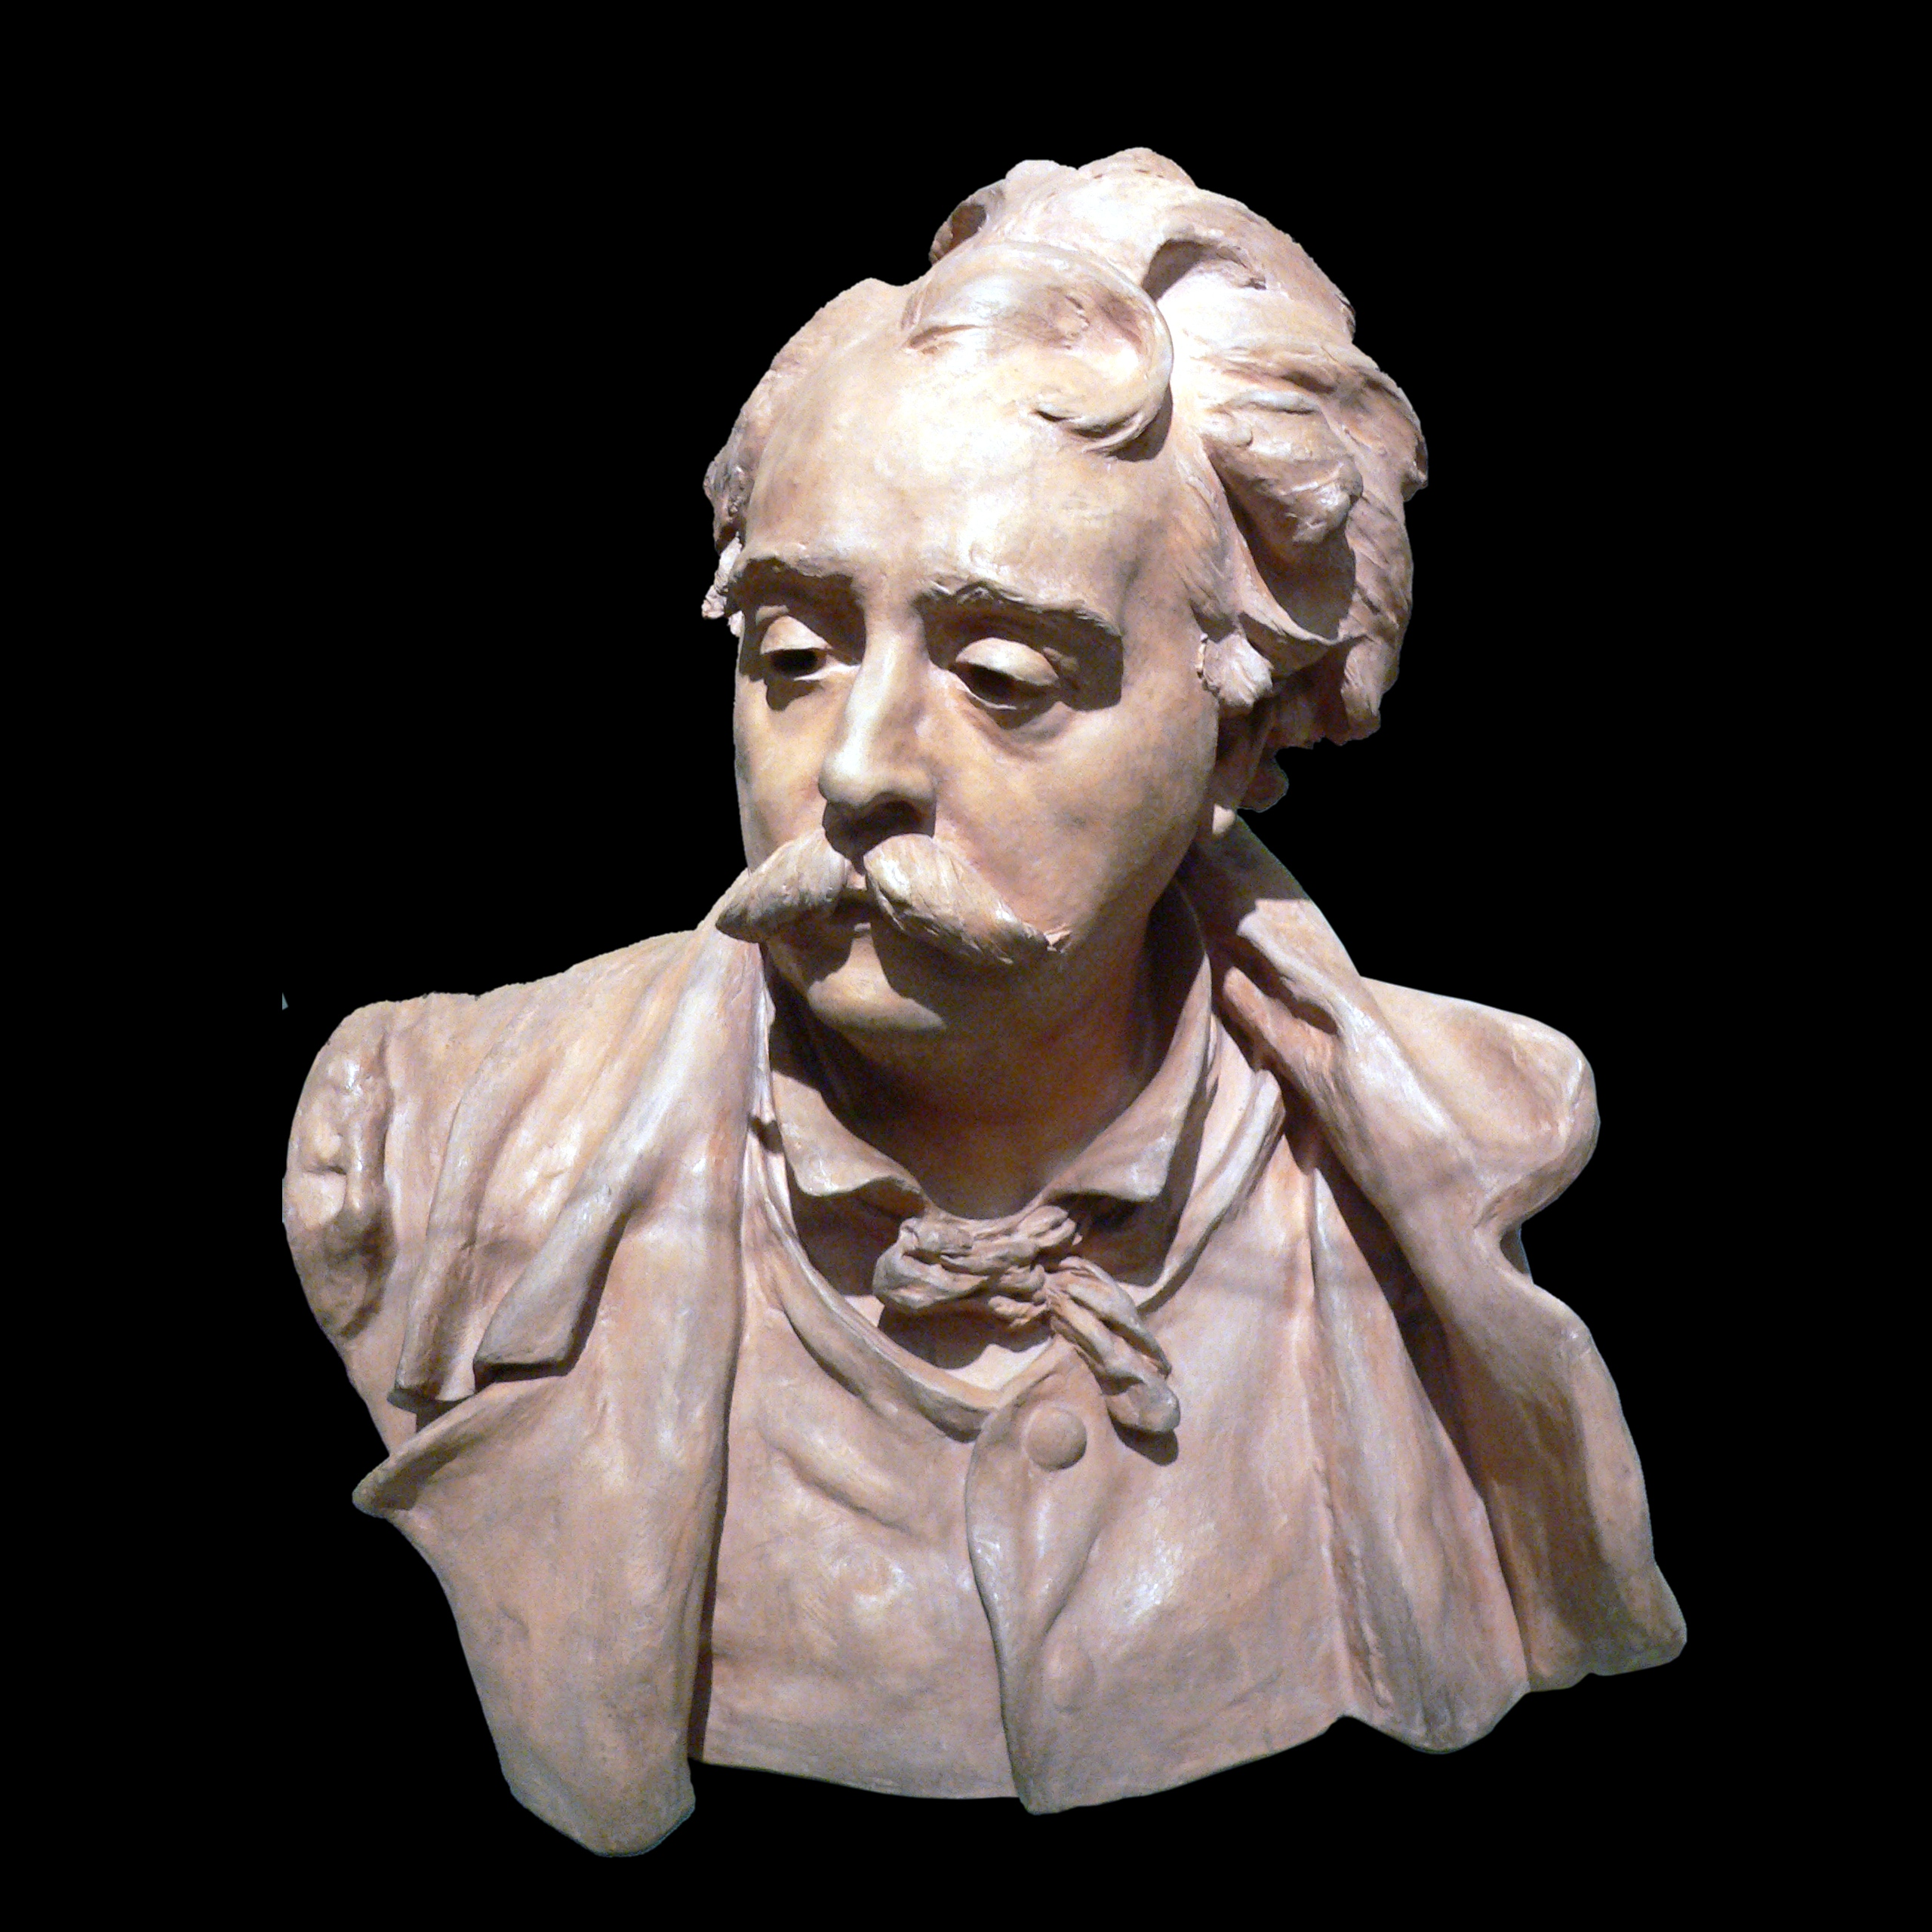 Bust of Albert Ernest Carrier Belleuse, 1882